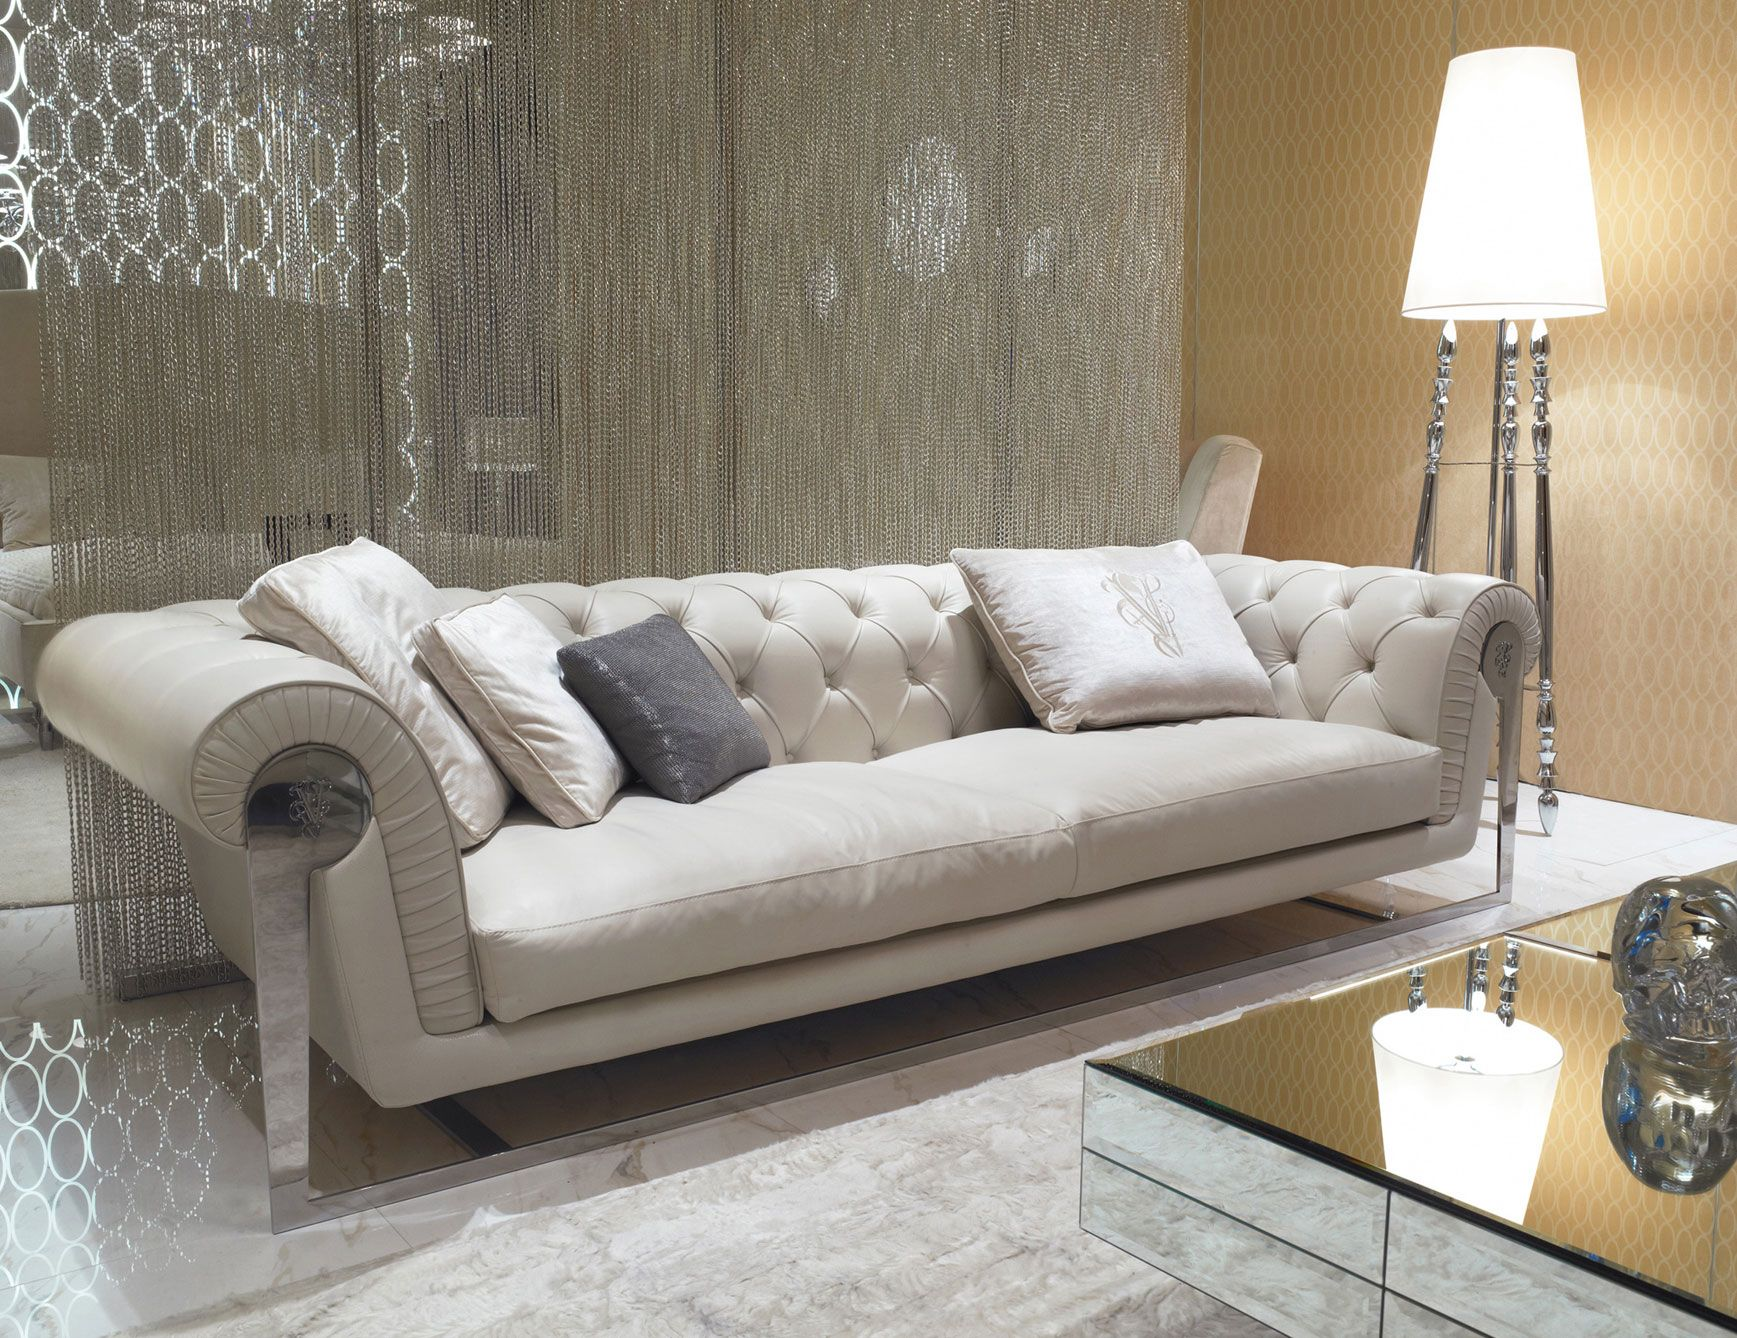 Chester Dudley Luxury Italian Sofa Upholstered In White Fabric With A Capitonne Embroidered Bac Luxury Furniture Sofa Luxury Furniture Stores Upscale Furniture